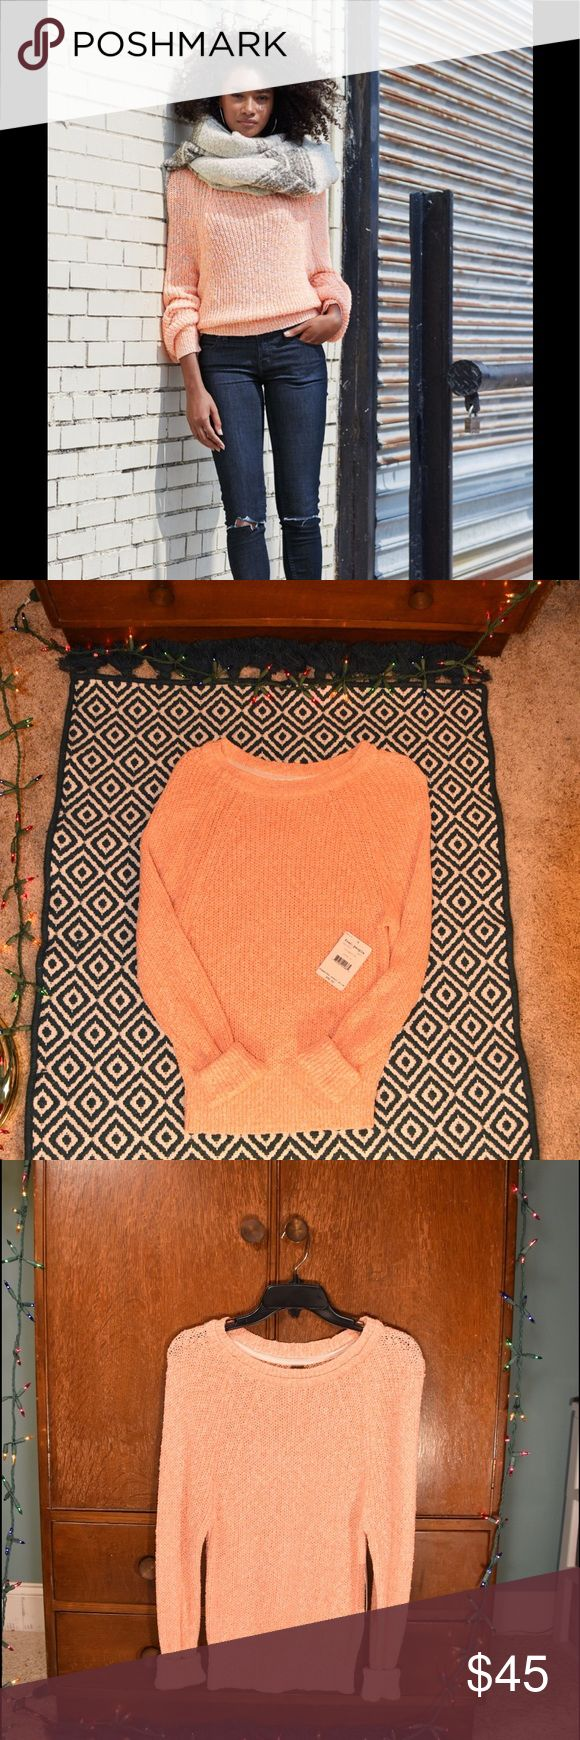 NWT FP Electric City Pullover in Tangerine New with tags! Just in time for Fall, this Free People long sleeve pullover is so comfortable and cute. Reasonable offers accepted 💕 Free People Tops